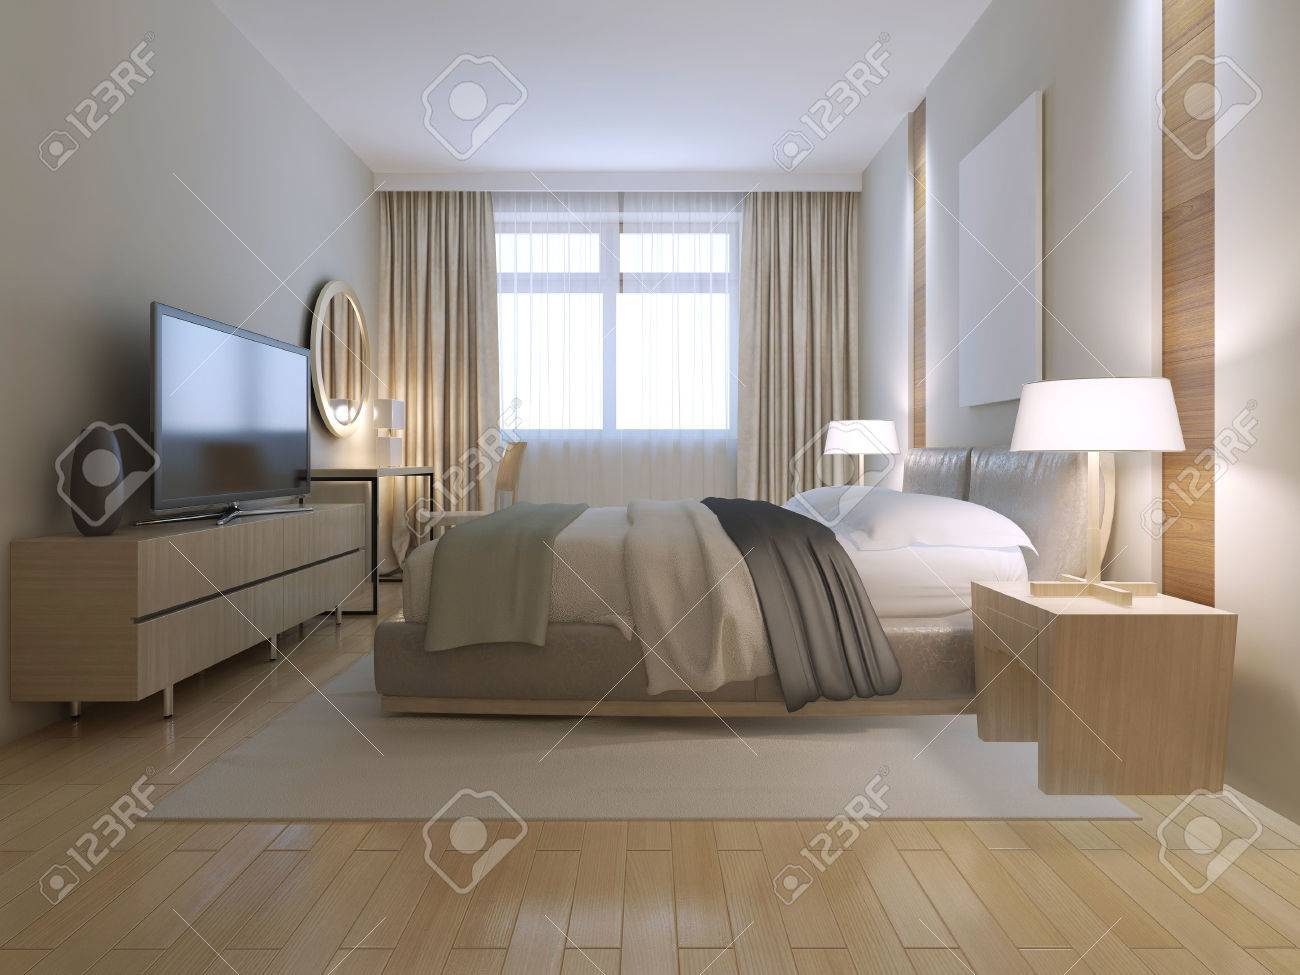 Contemporary Bedroom Design. Spacious Room With Light Wood Parquet ...